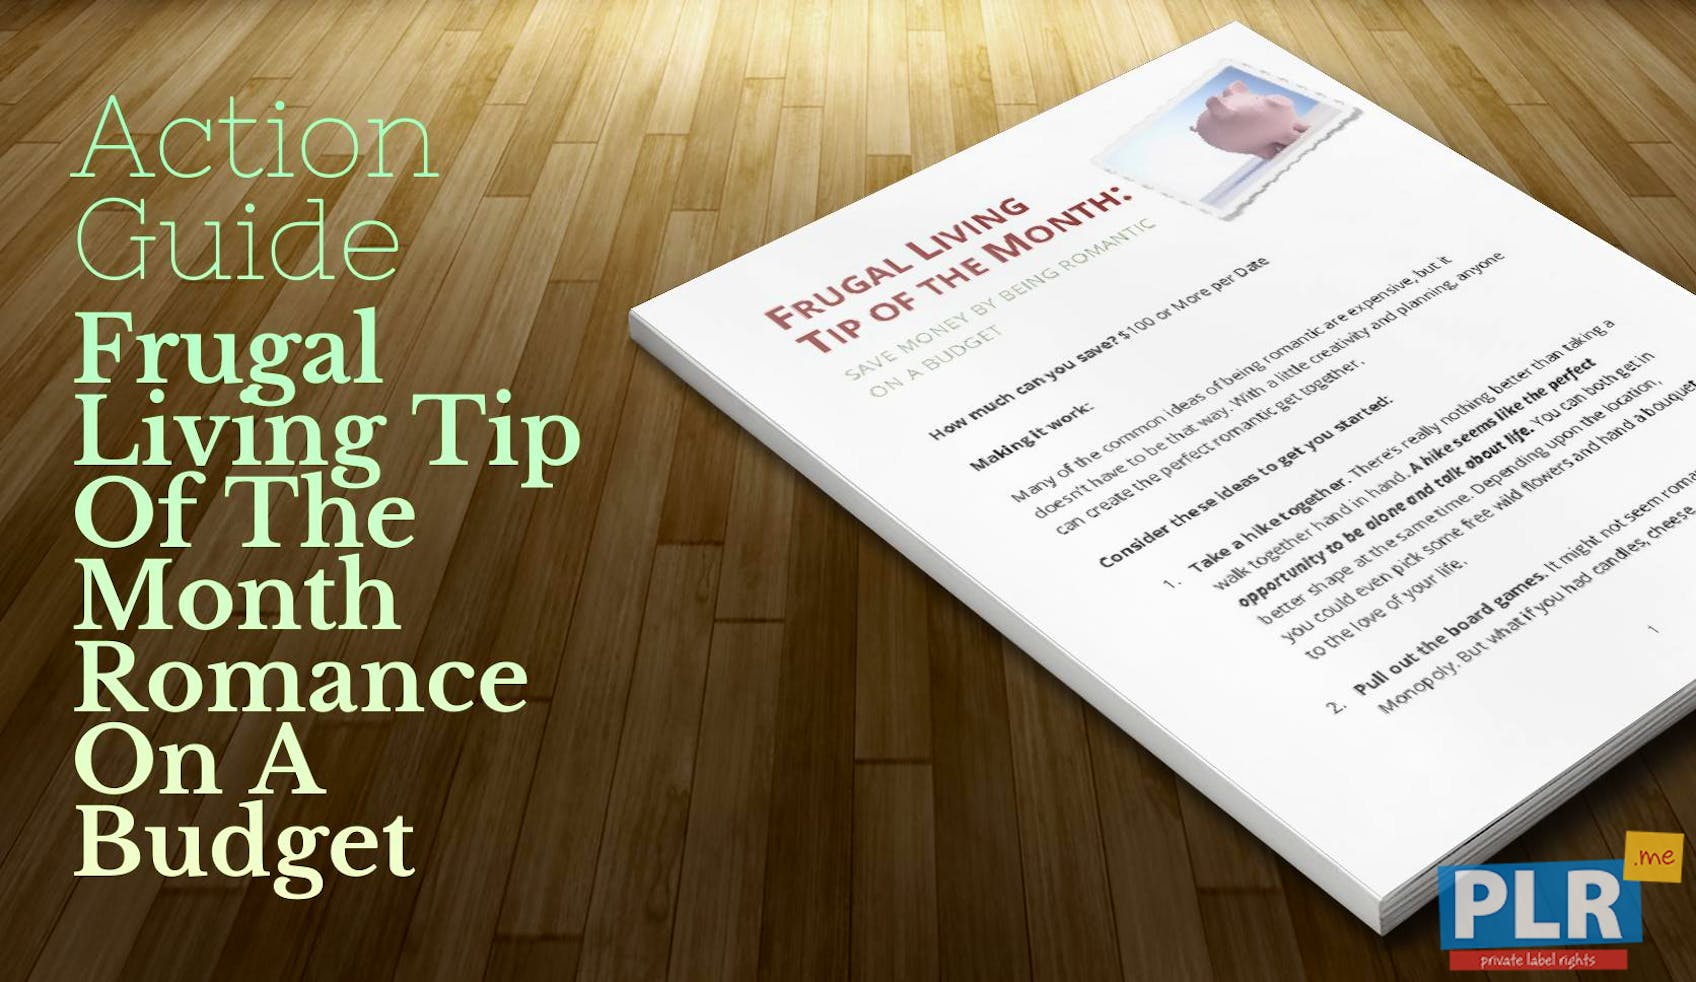 Frugal Living Tip Of The Month Romance On A Budget